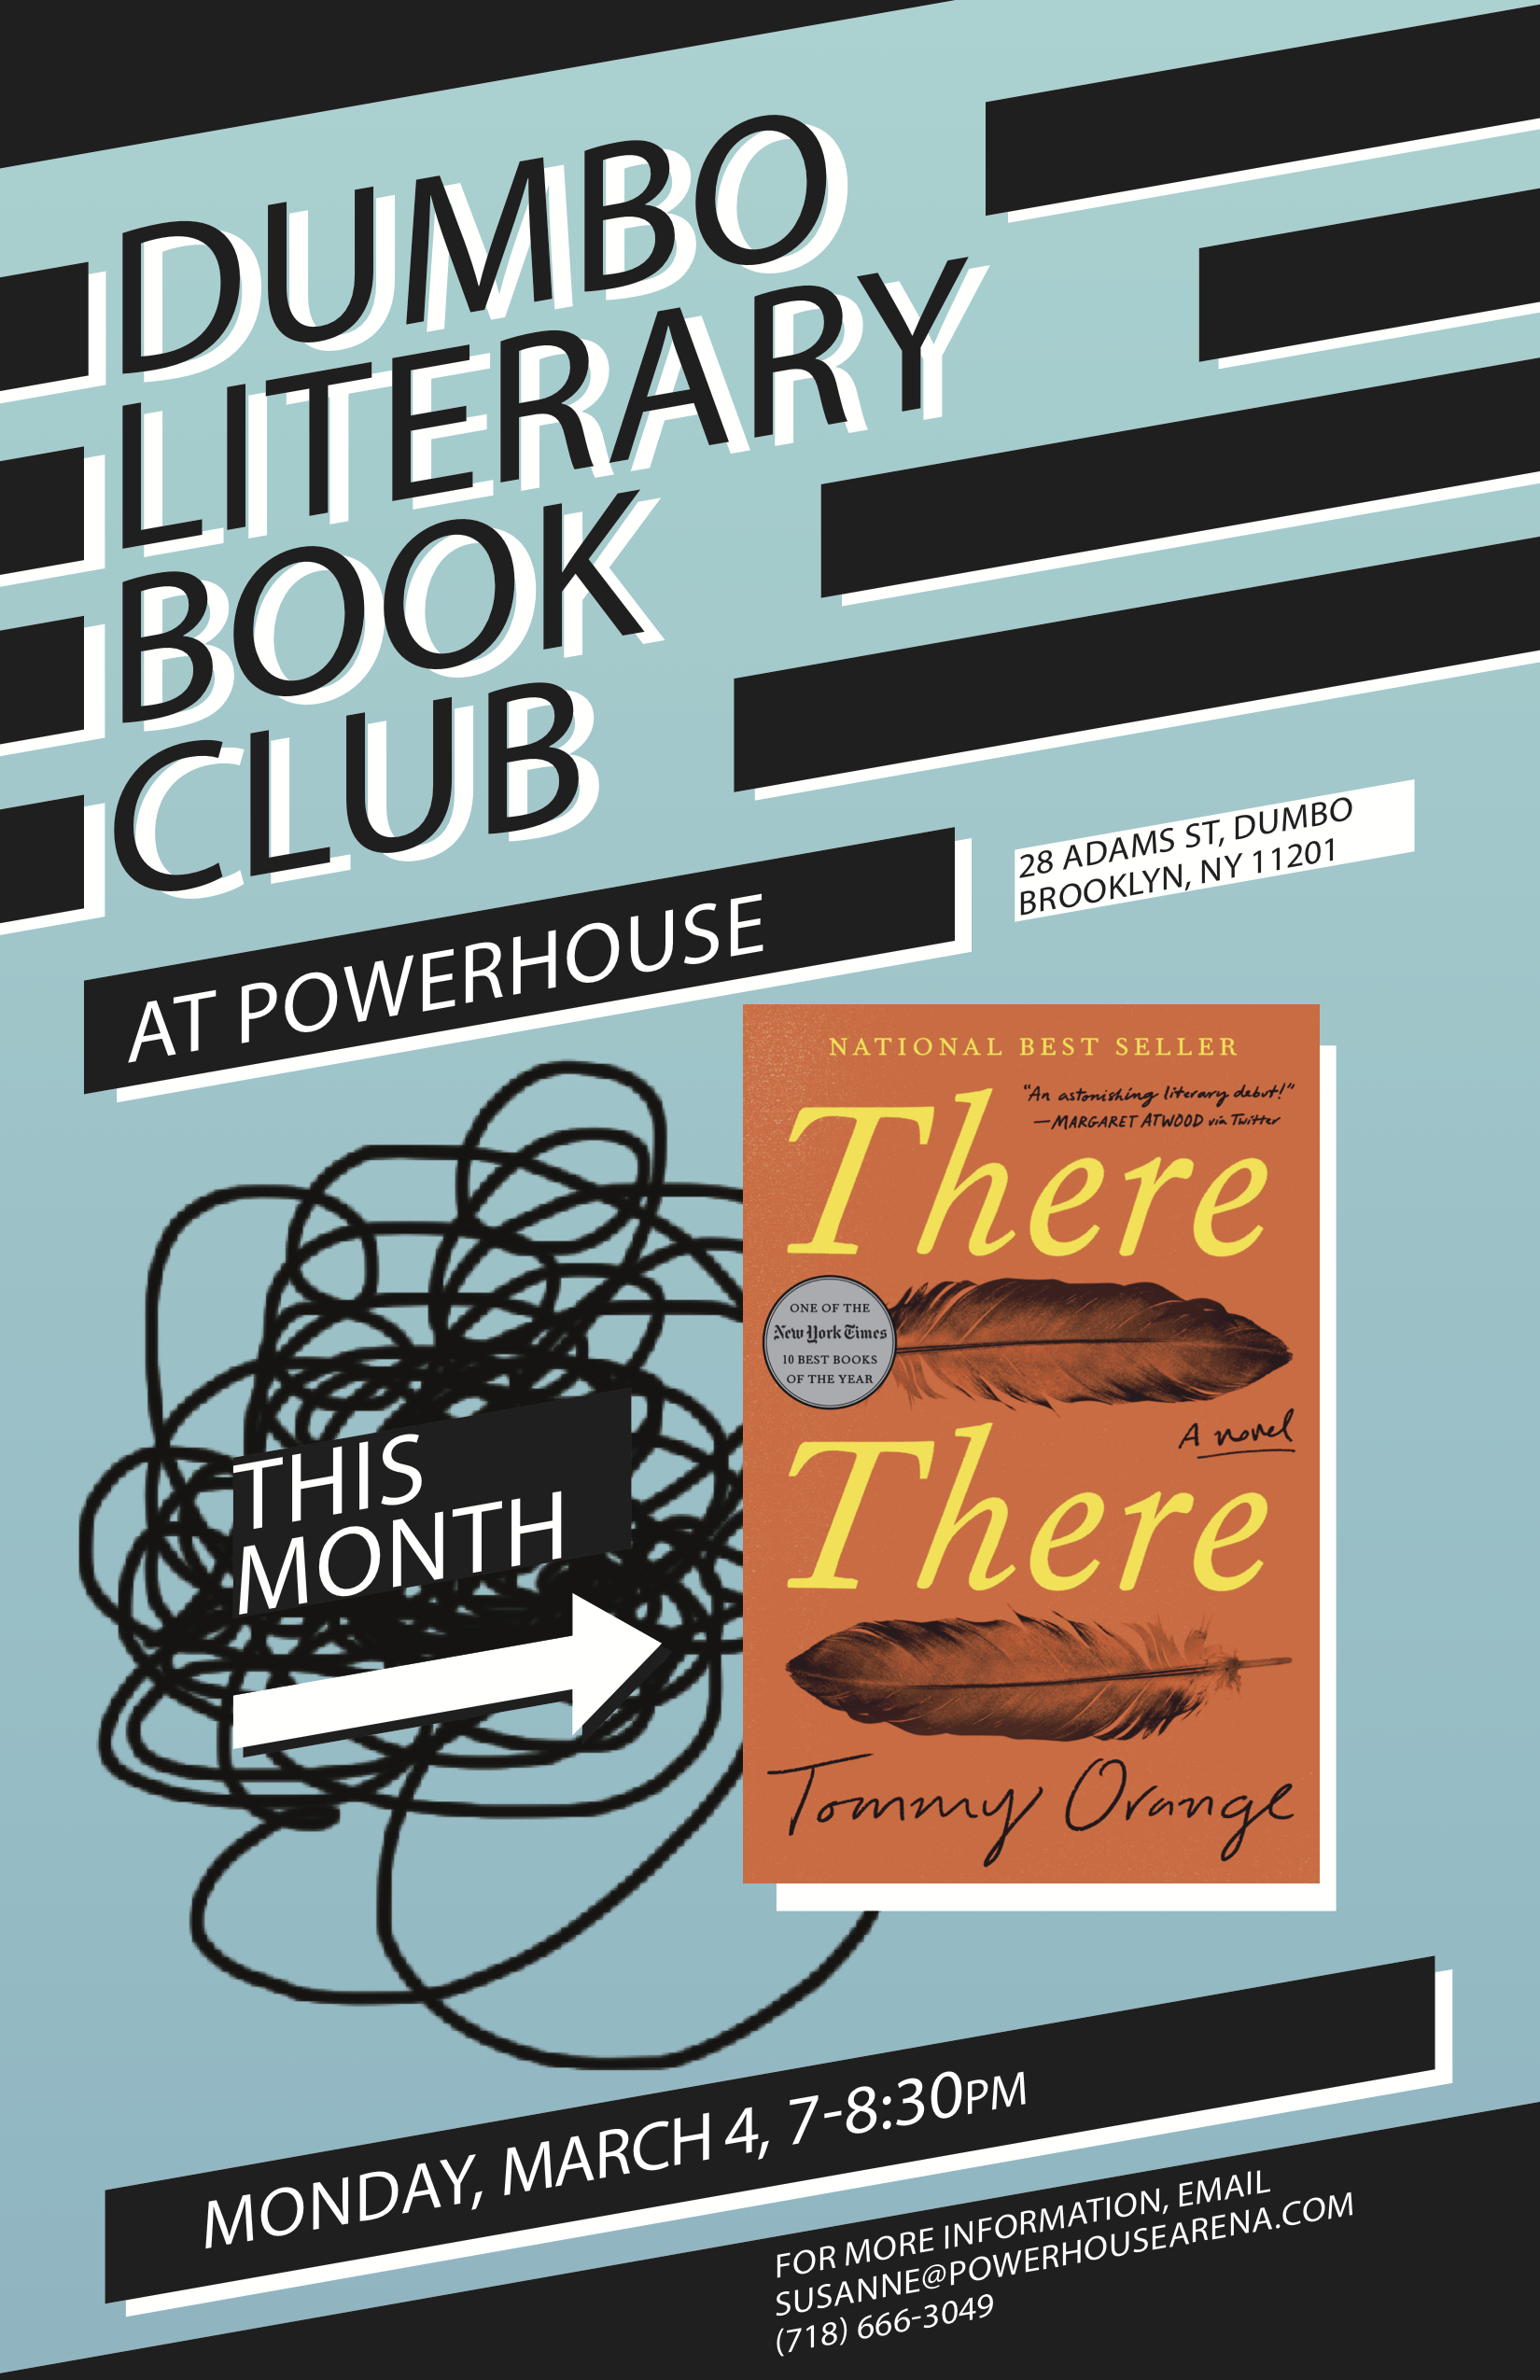 Dumbo Lit Book Club: There There by Tommy Orange